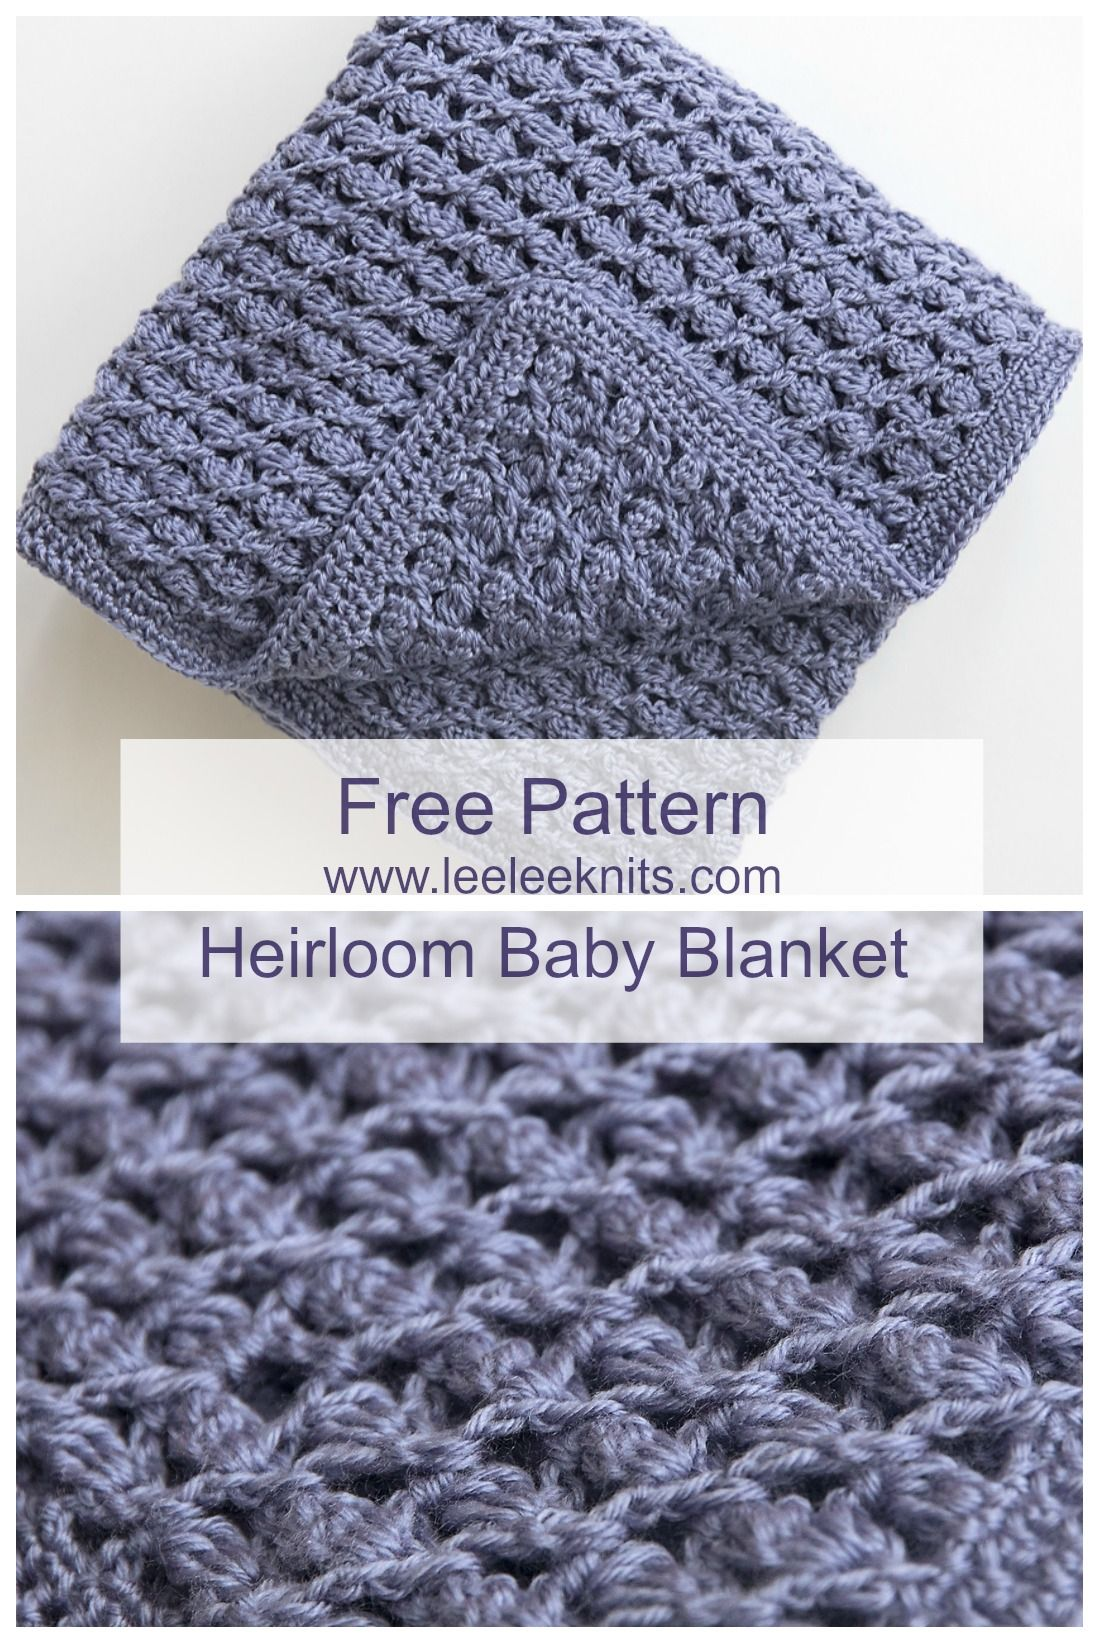 Free Heirloom Baby Blanket Crochet Pattern | crochet | Pinterest ...